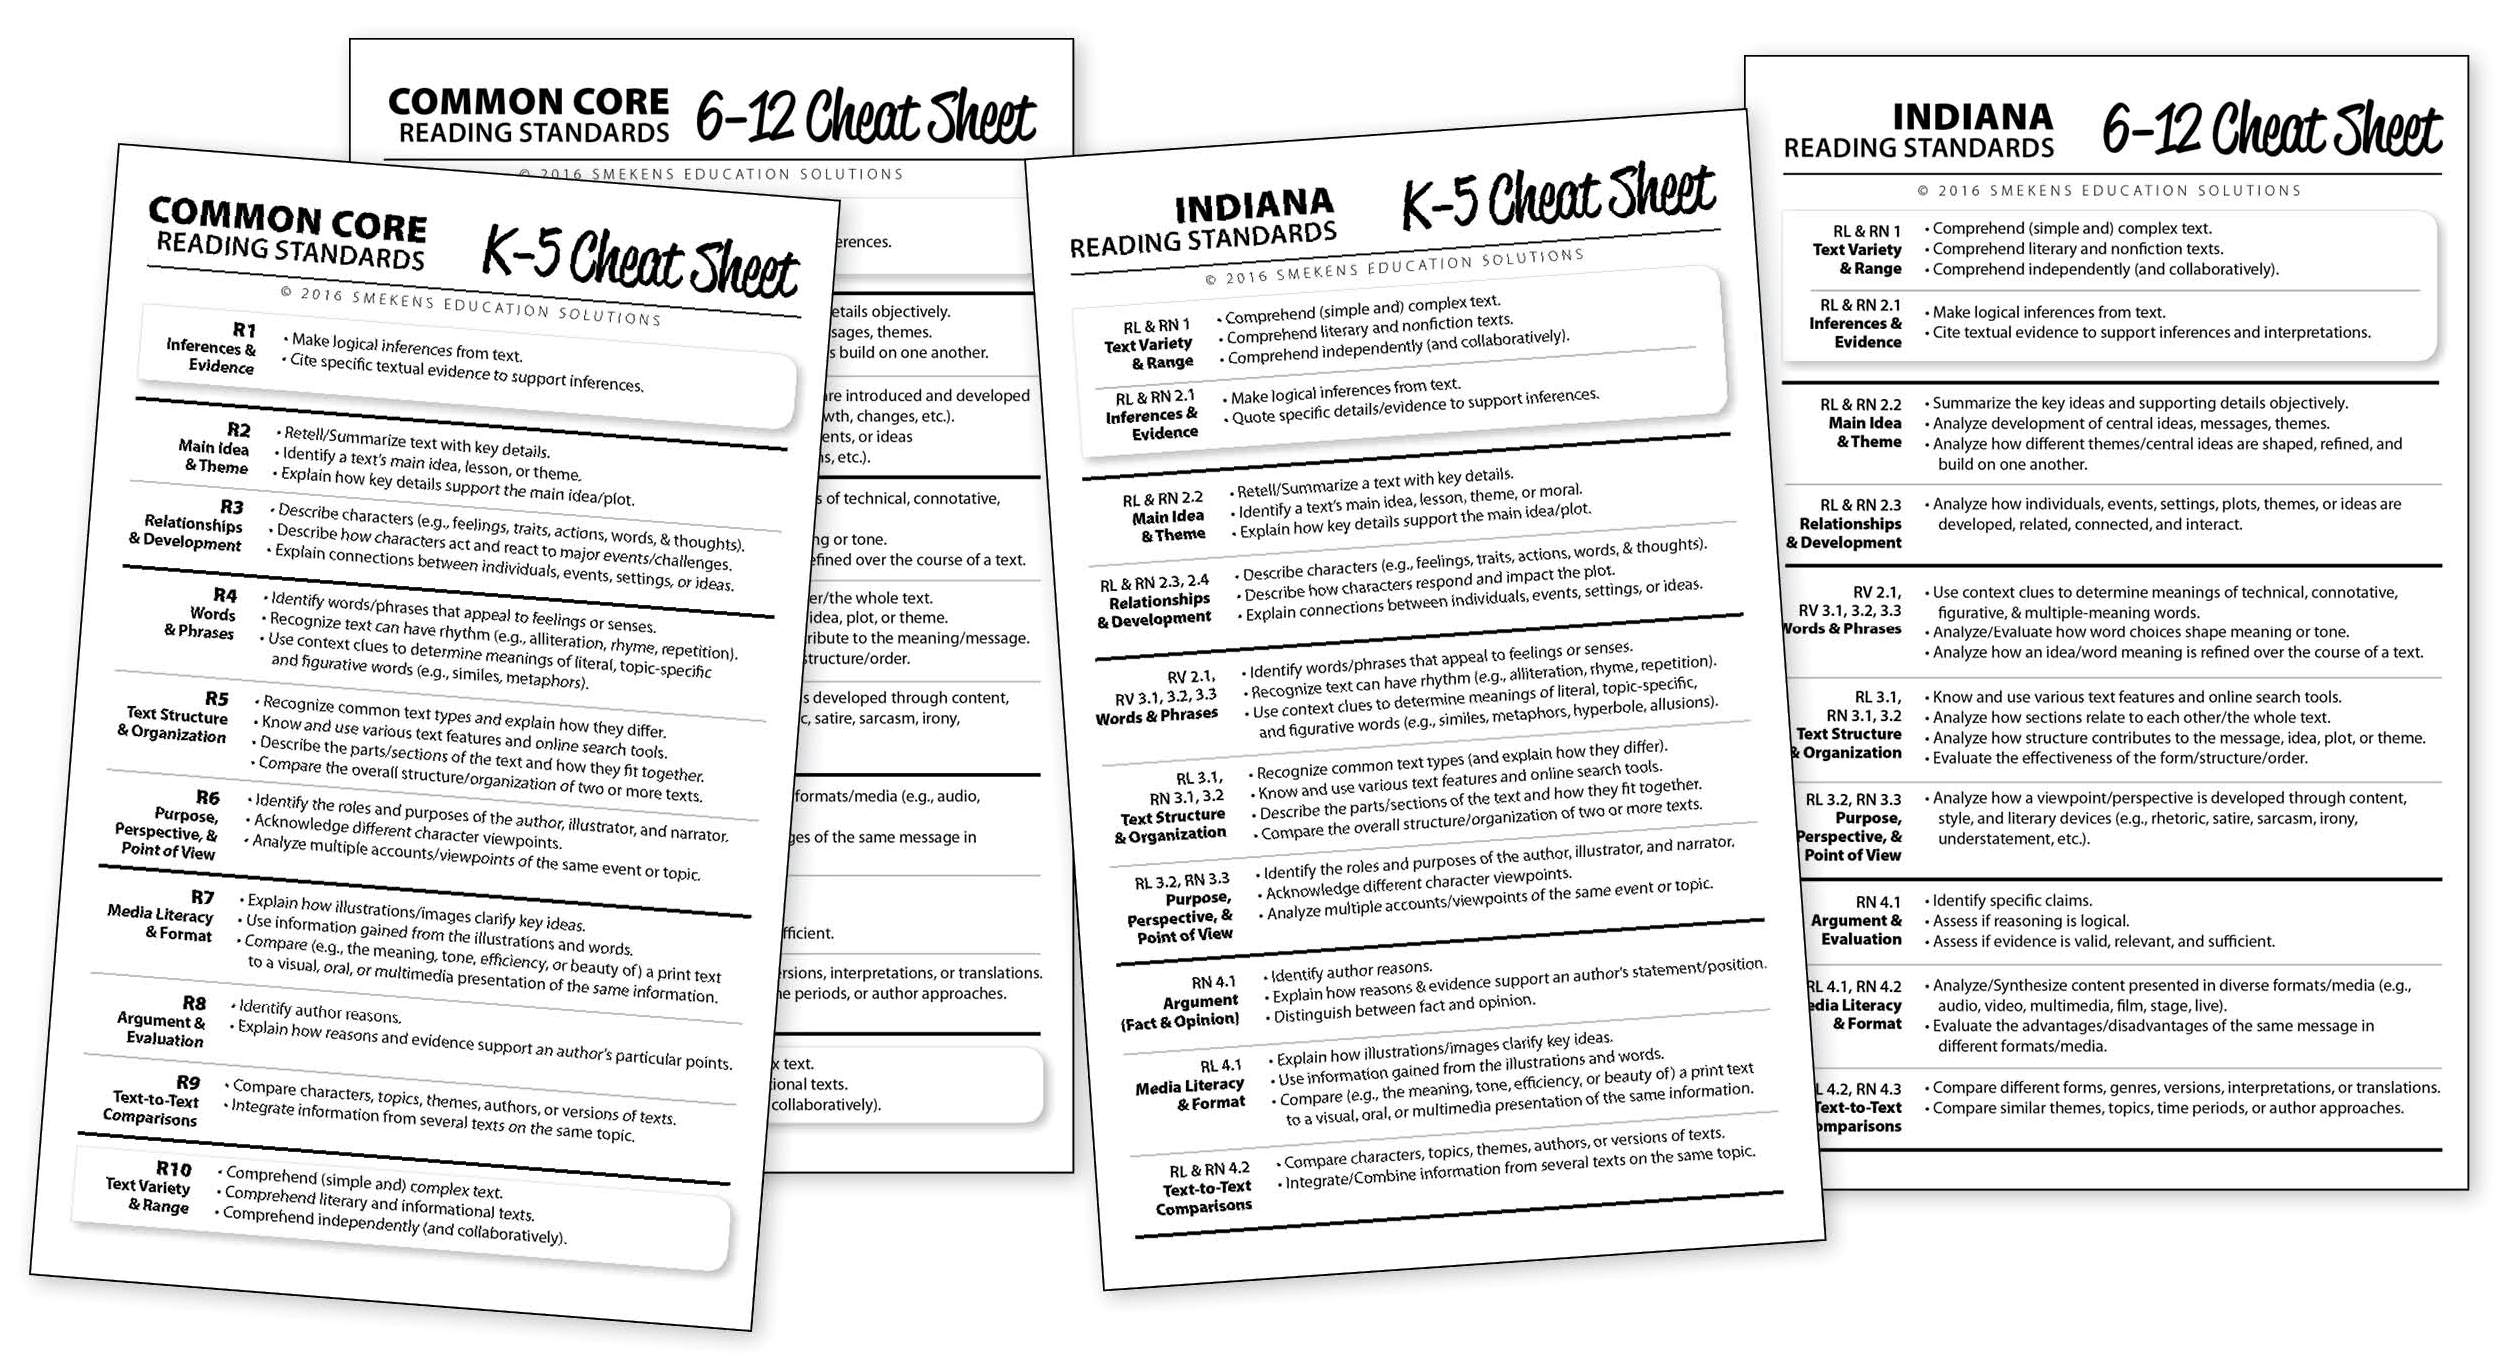 Master the 10 Anchor Reading Standards Cheat Sheet - Common Core & Indiana Academic Standards